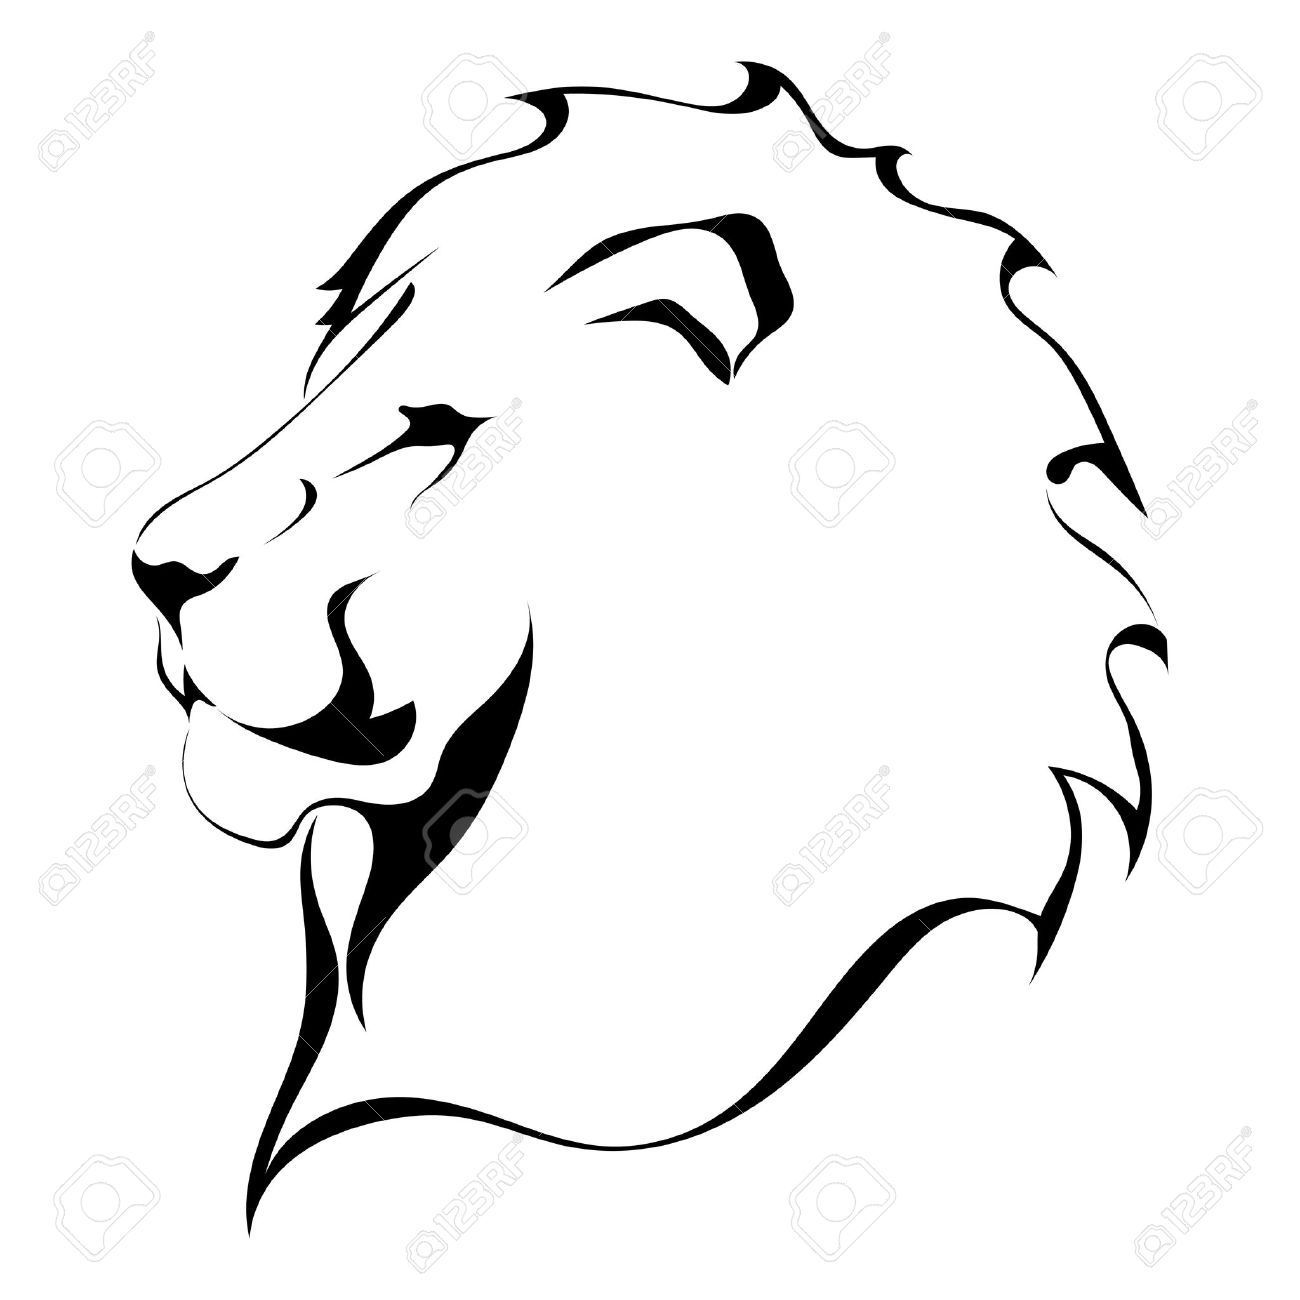 Lion Head On A White Background Tattoo Lion Head Tattoos Lion Silhouette Lion Tattoo 15 lion image black and white download outline professional designs for business and education. lion head on a white background tattoo